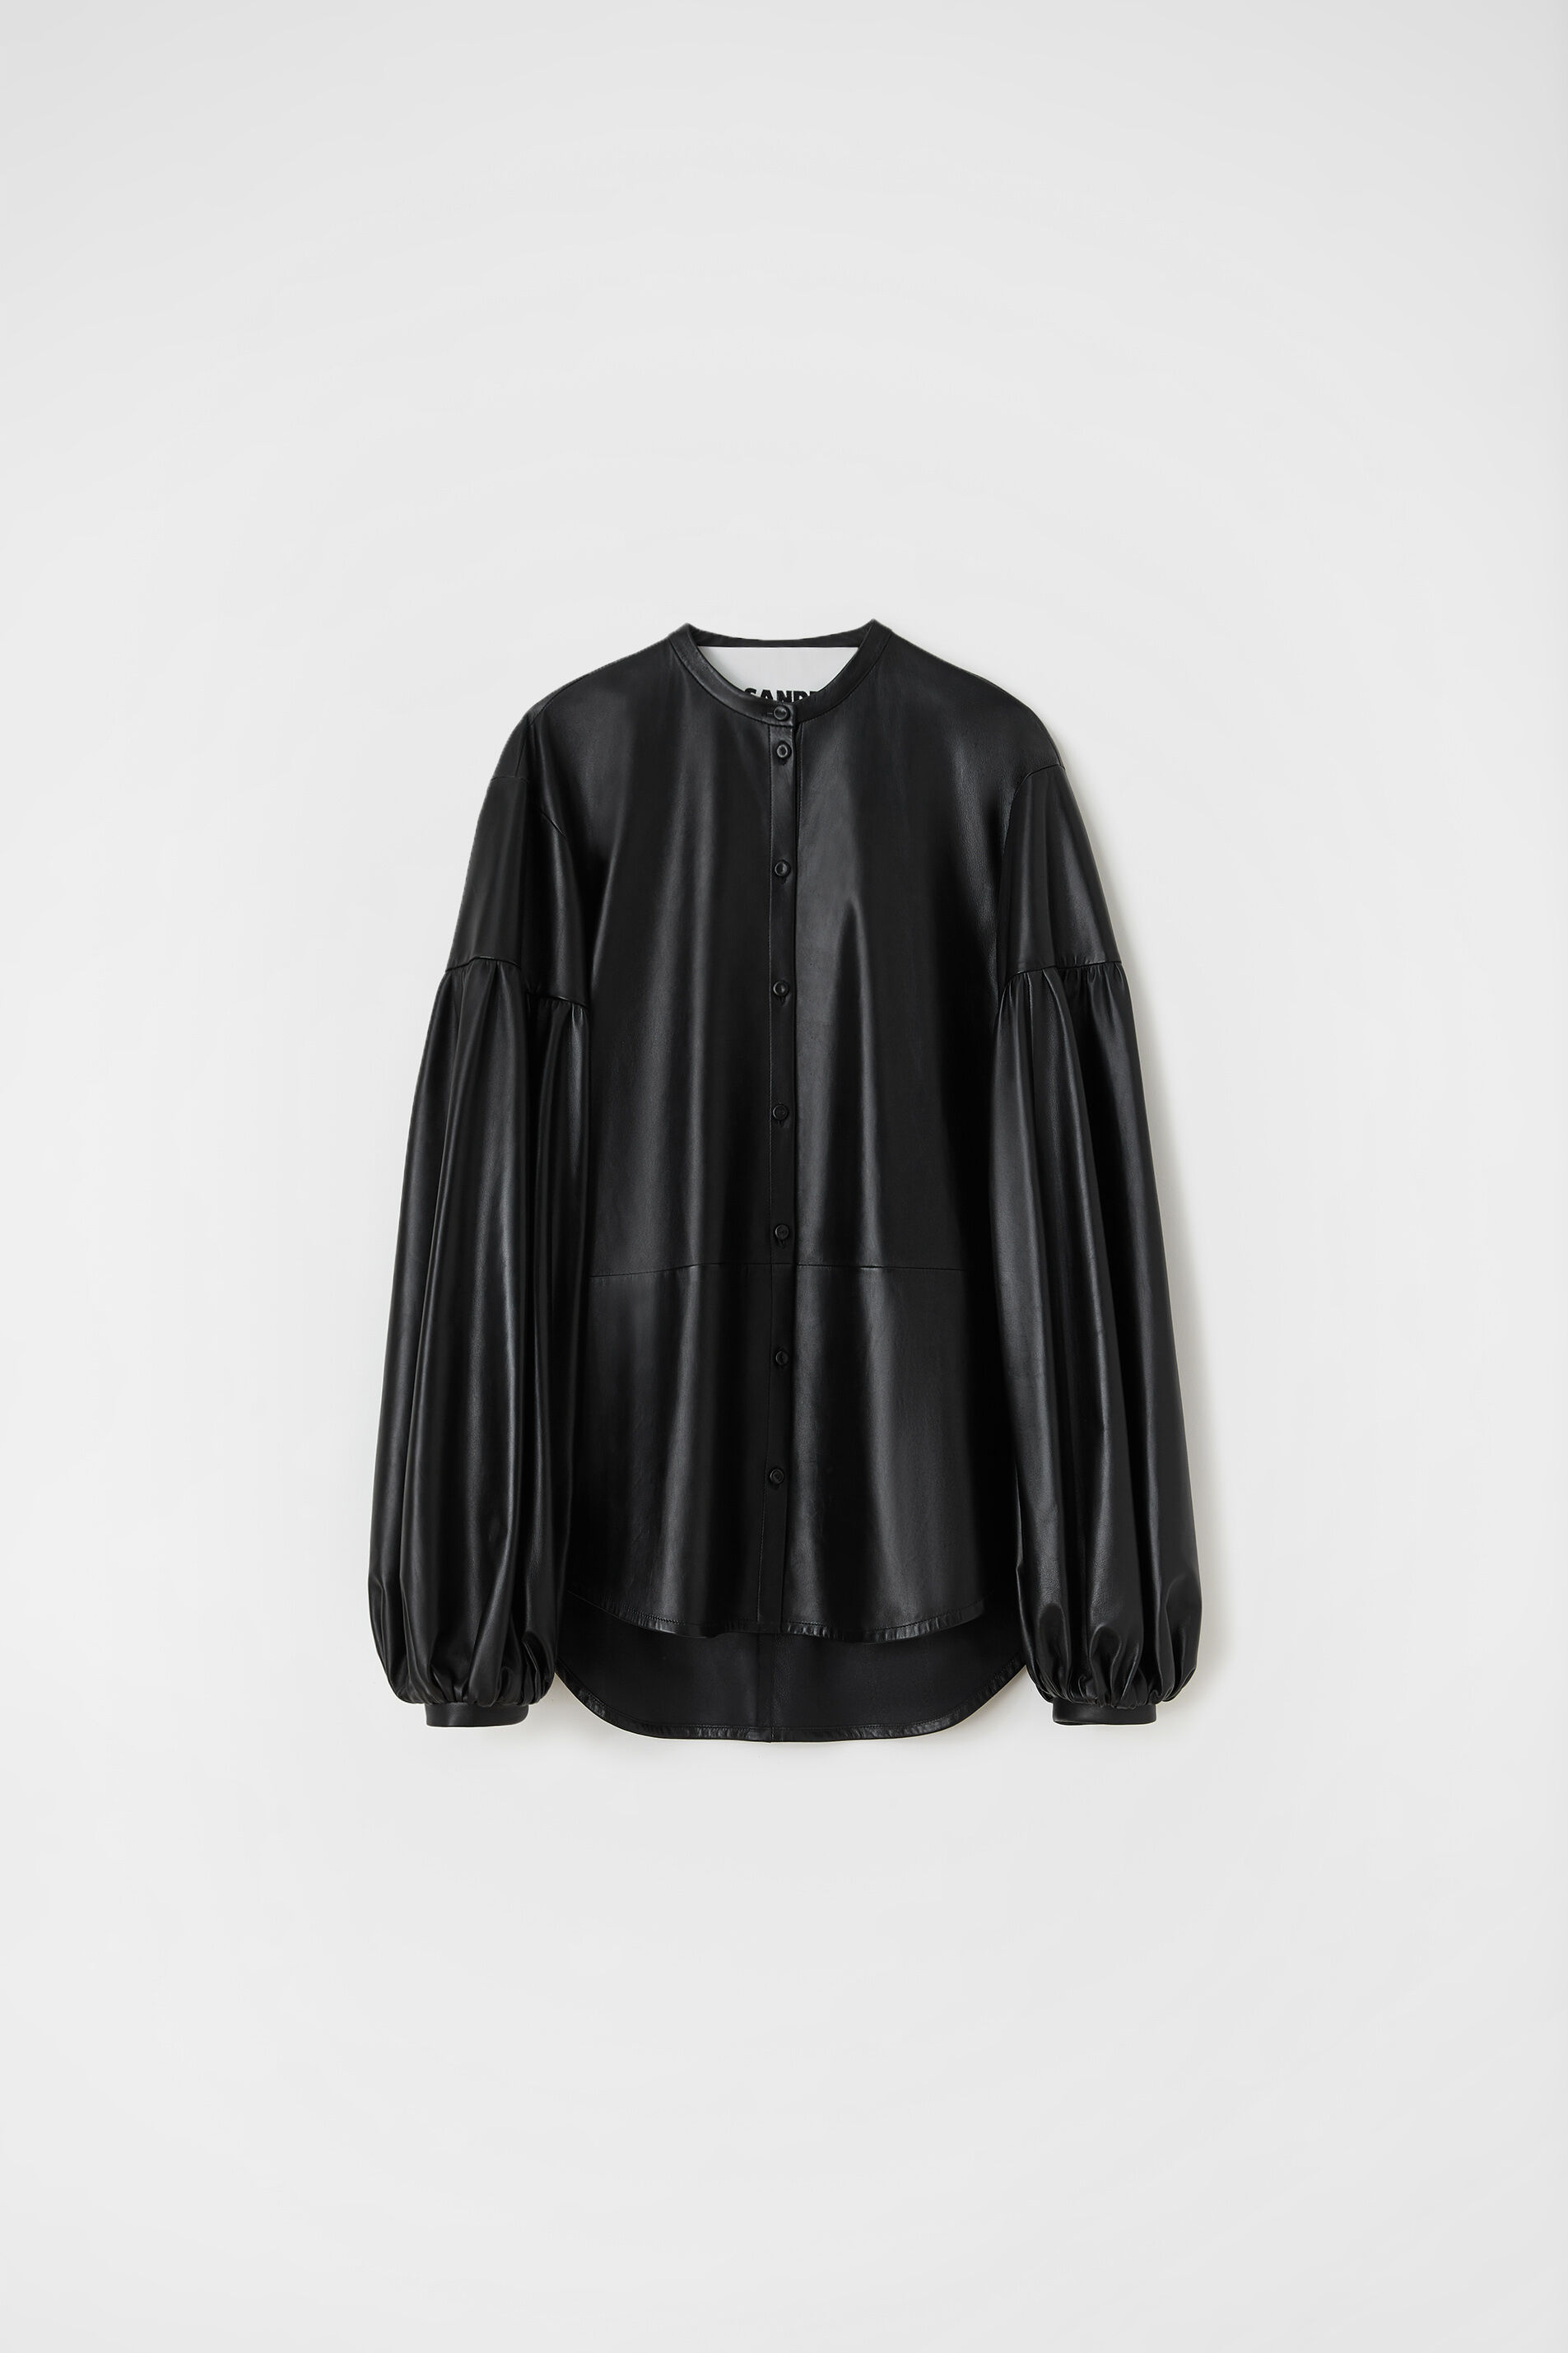 Leather Shirt, black, large